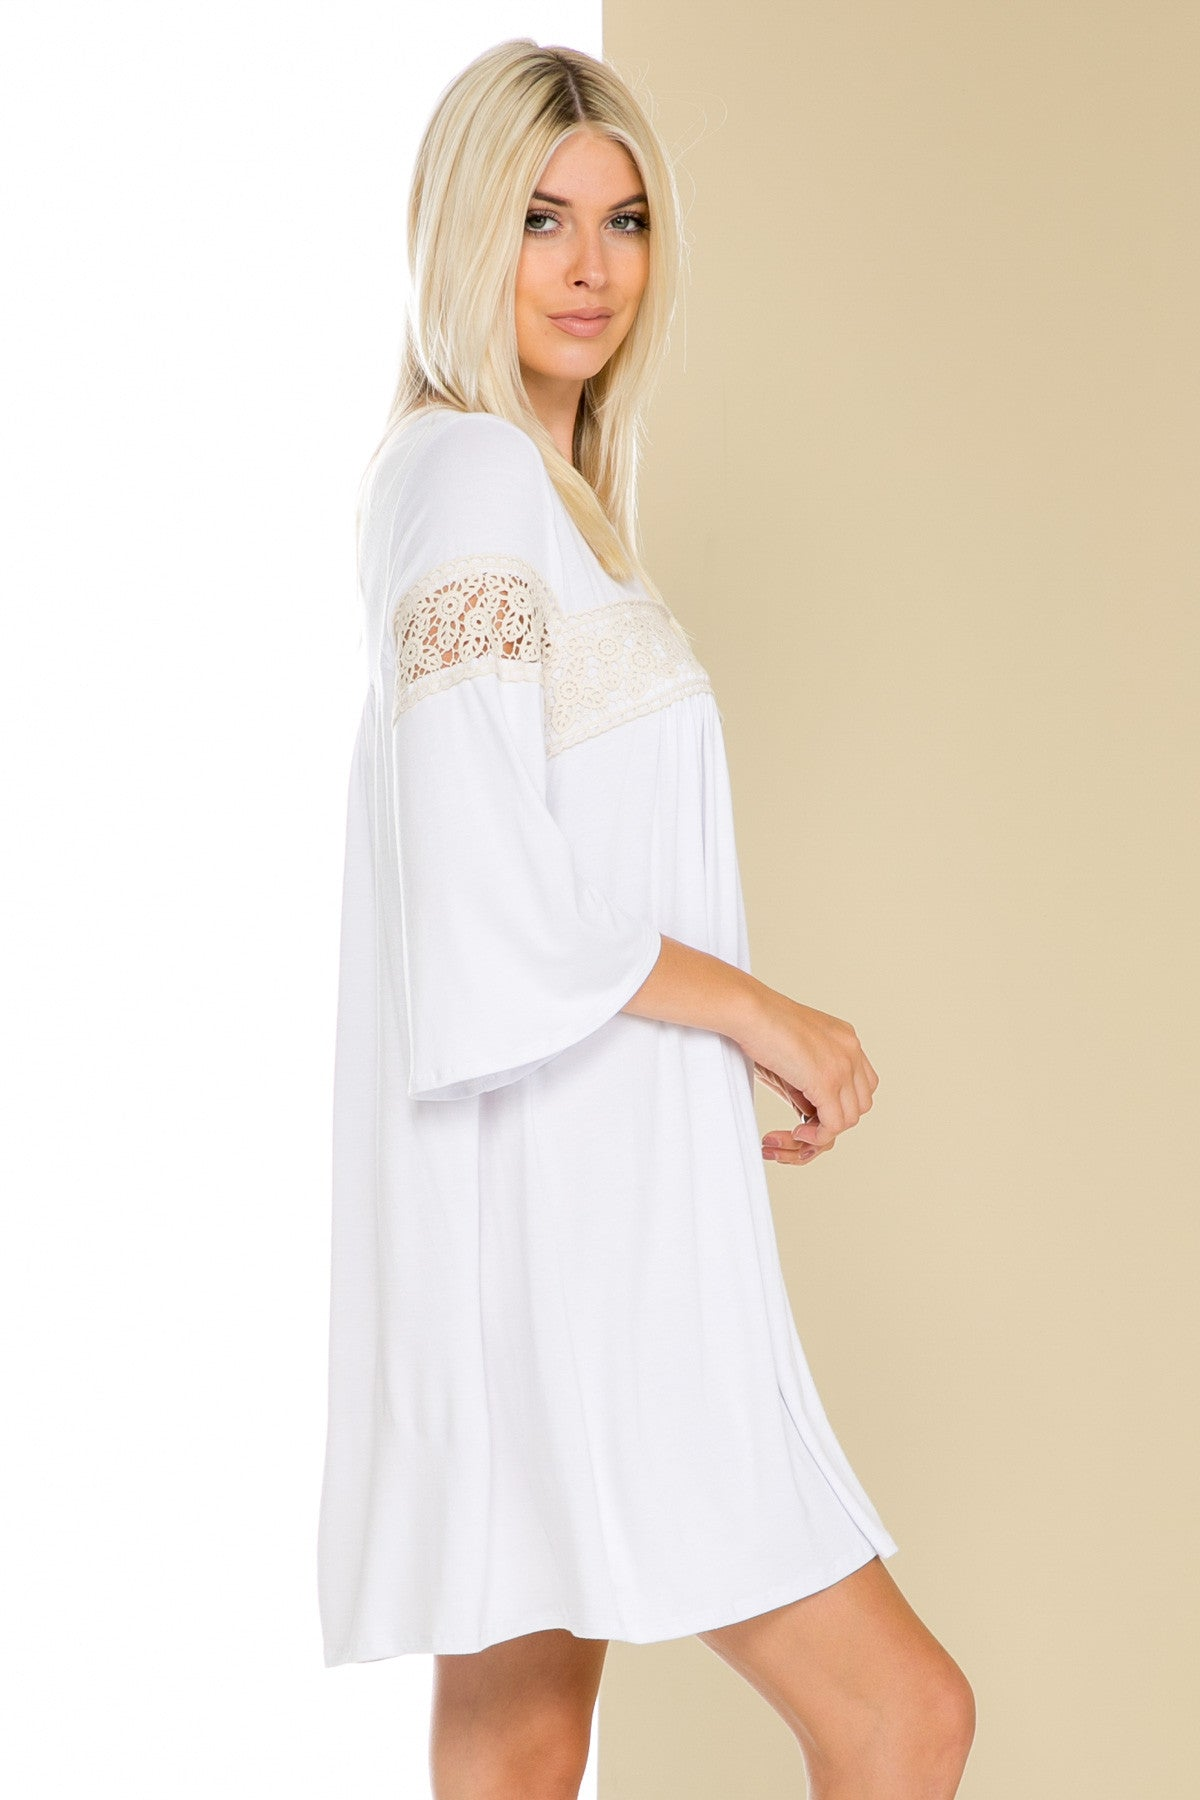 White Bell Sleeve Crochet Trim Swing Dress - Dresses - My Yuccie - 2